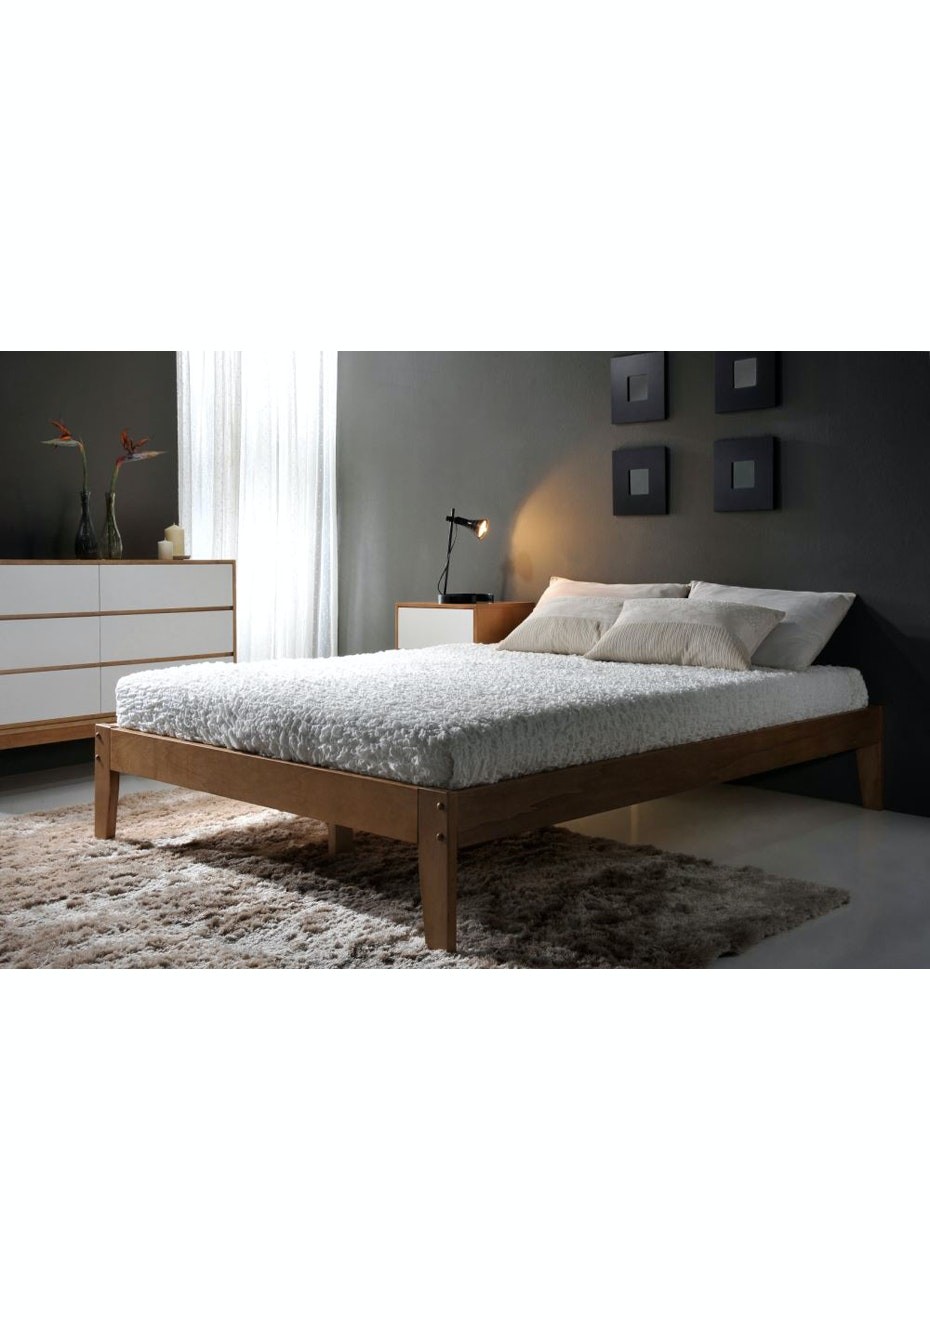 sophisticated bedroom furniture. Sophisticated Affordable Bedroom Furniture. Furniture R D